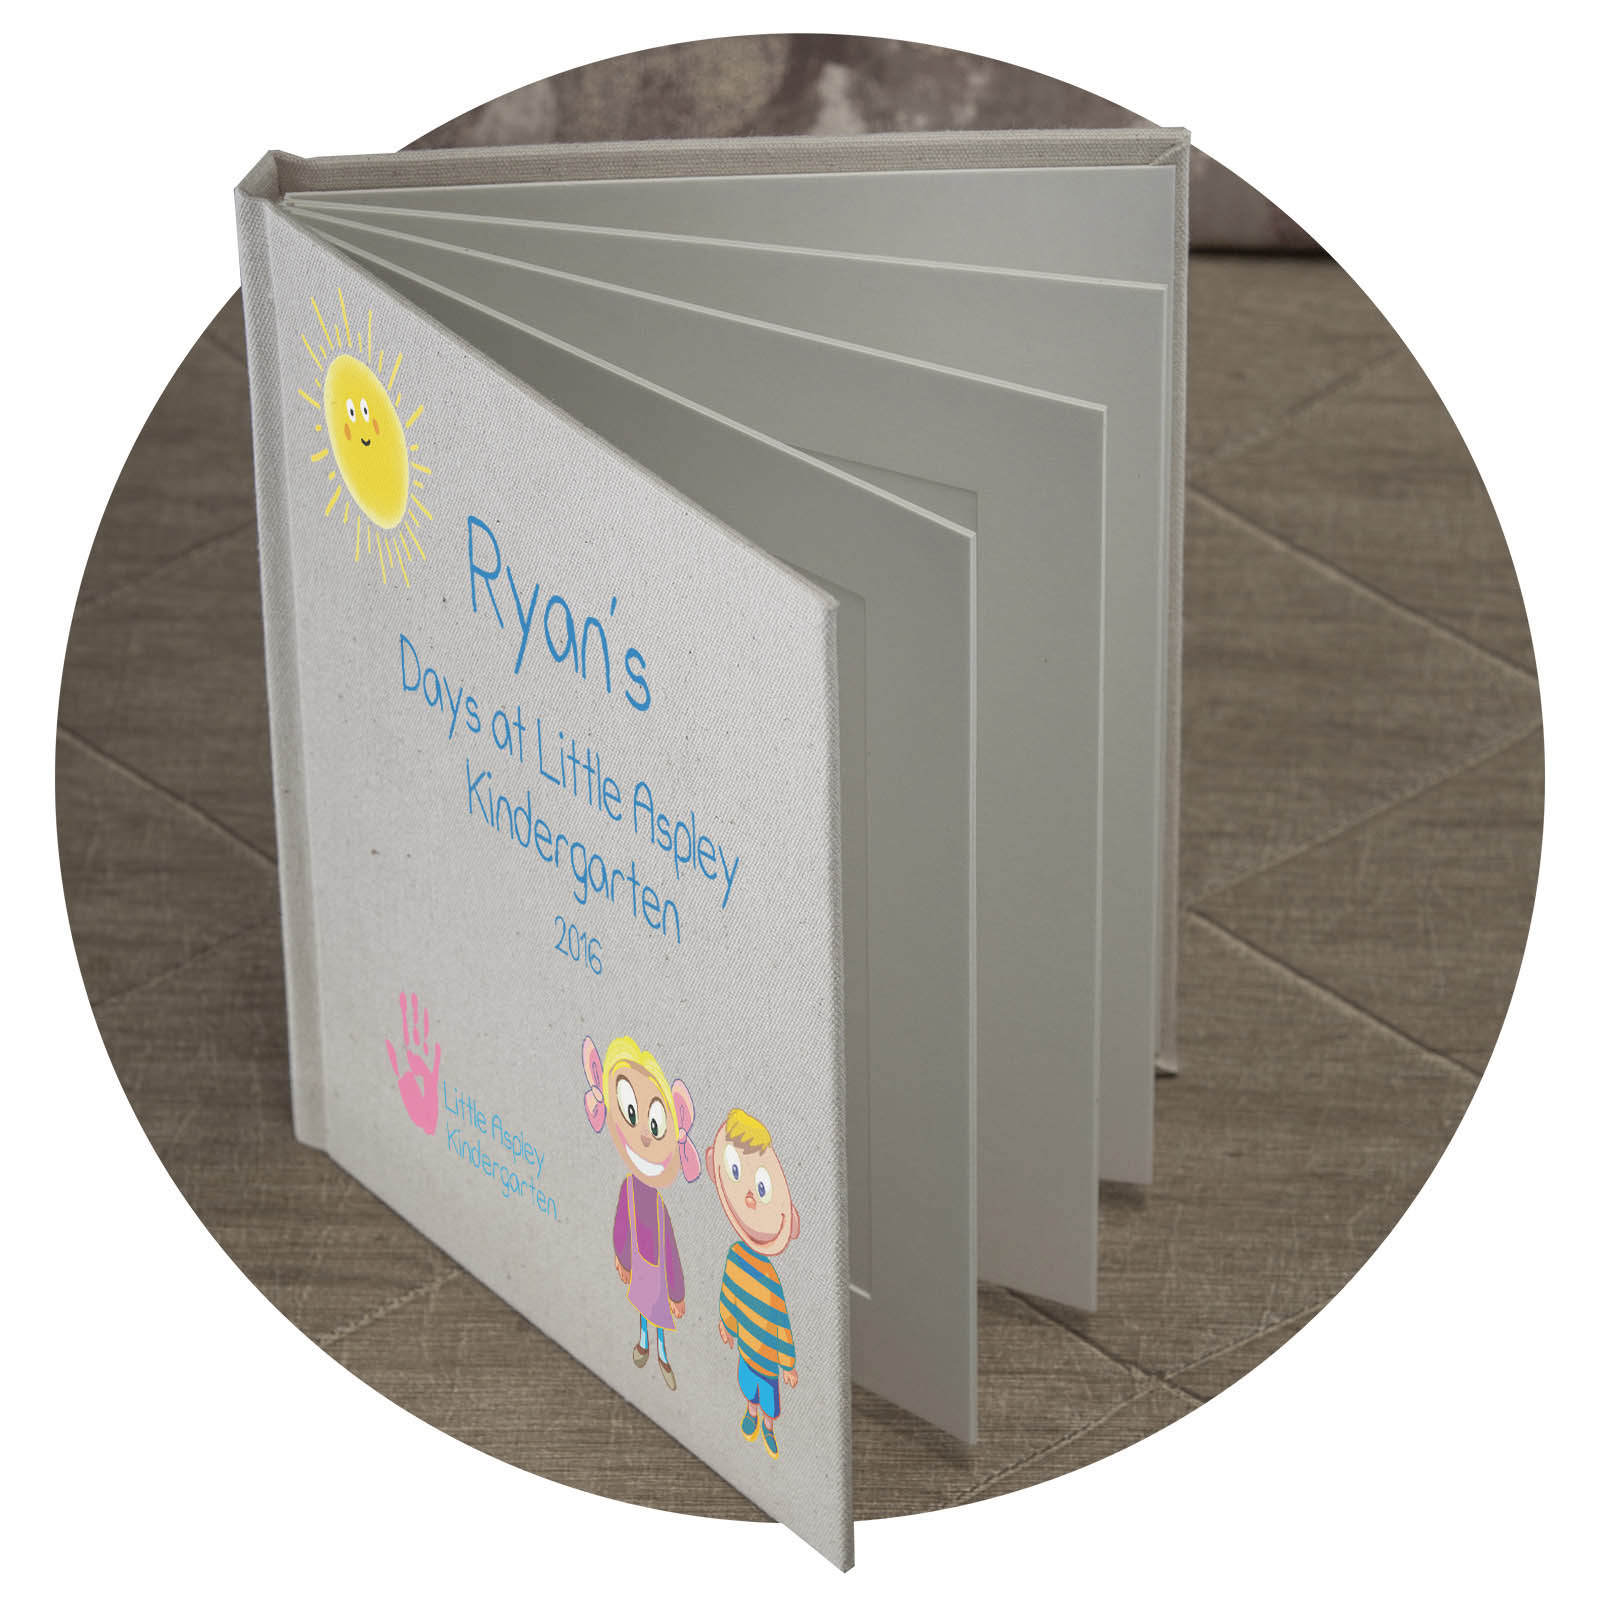 "6 Page 5x7"" Photo Album with Personalisation."